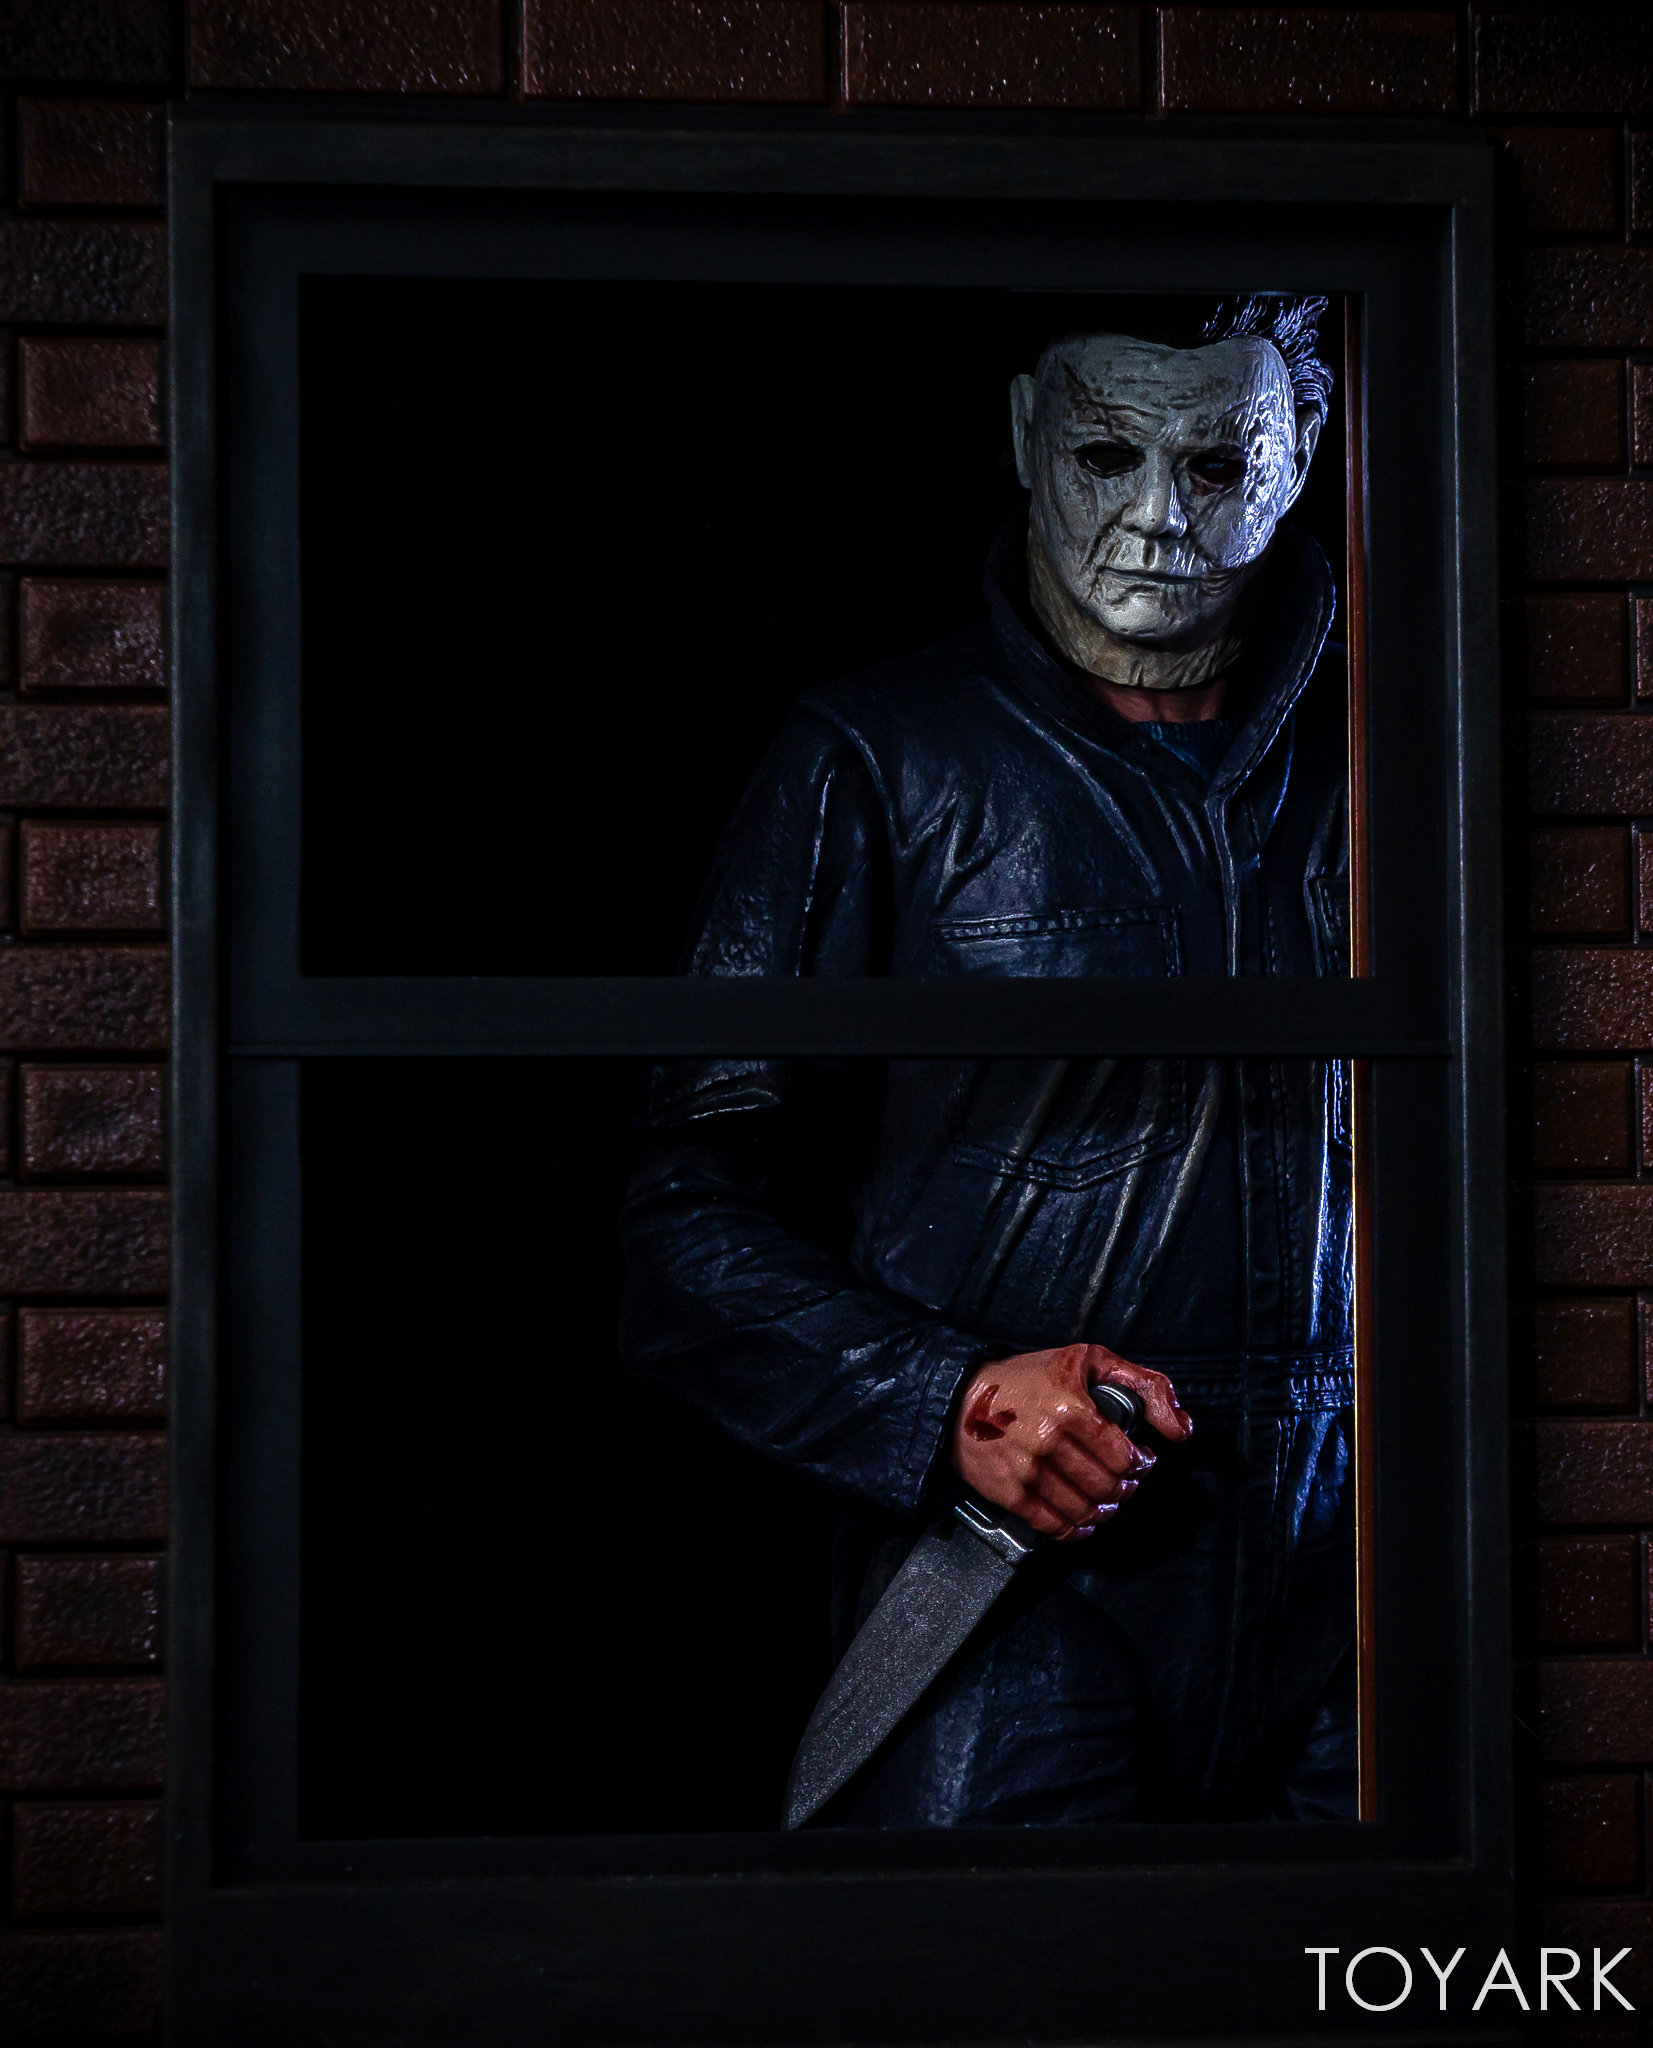 https://news.toyark.com/wp-content/uploads/sites/4/2018/11/Halloween-2018-Michael-Myers-Figure-038.jpg